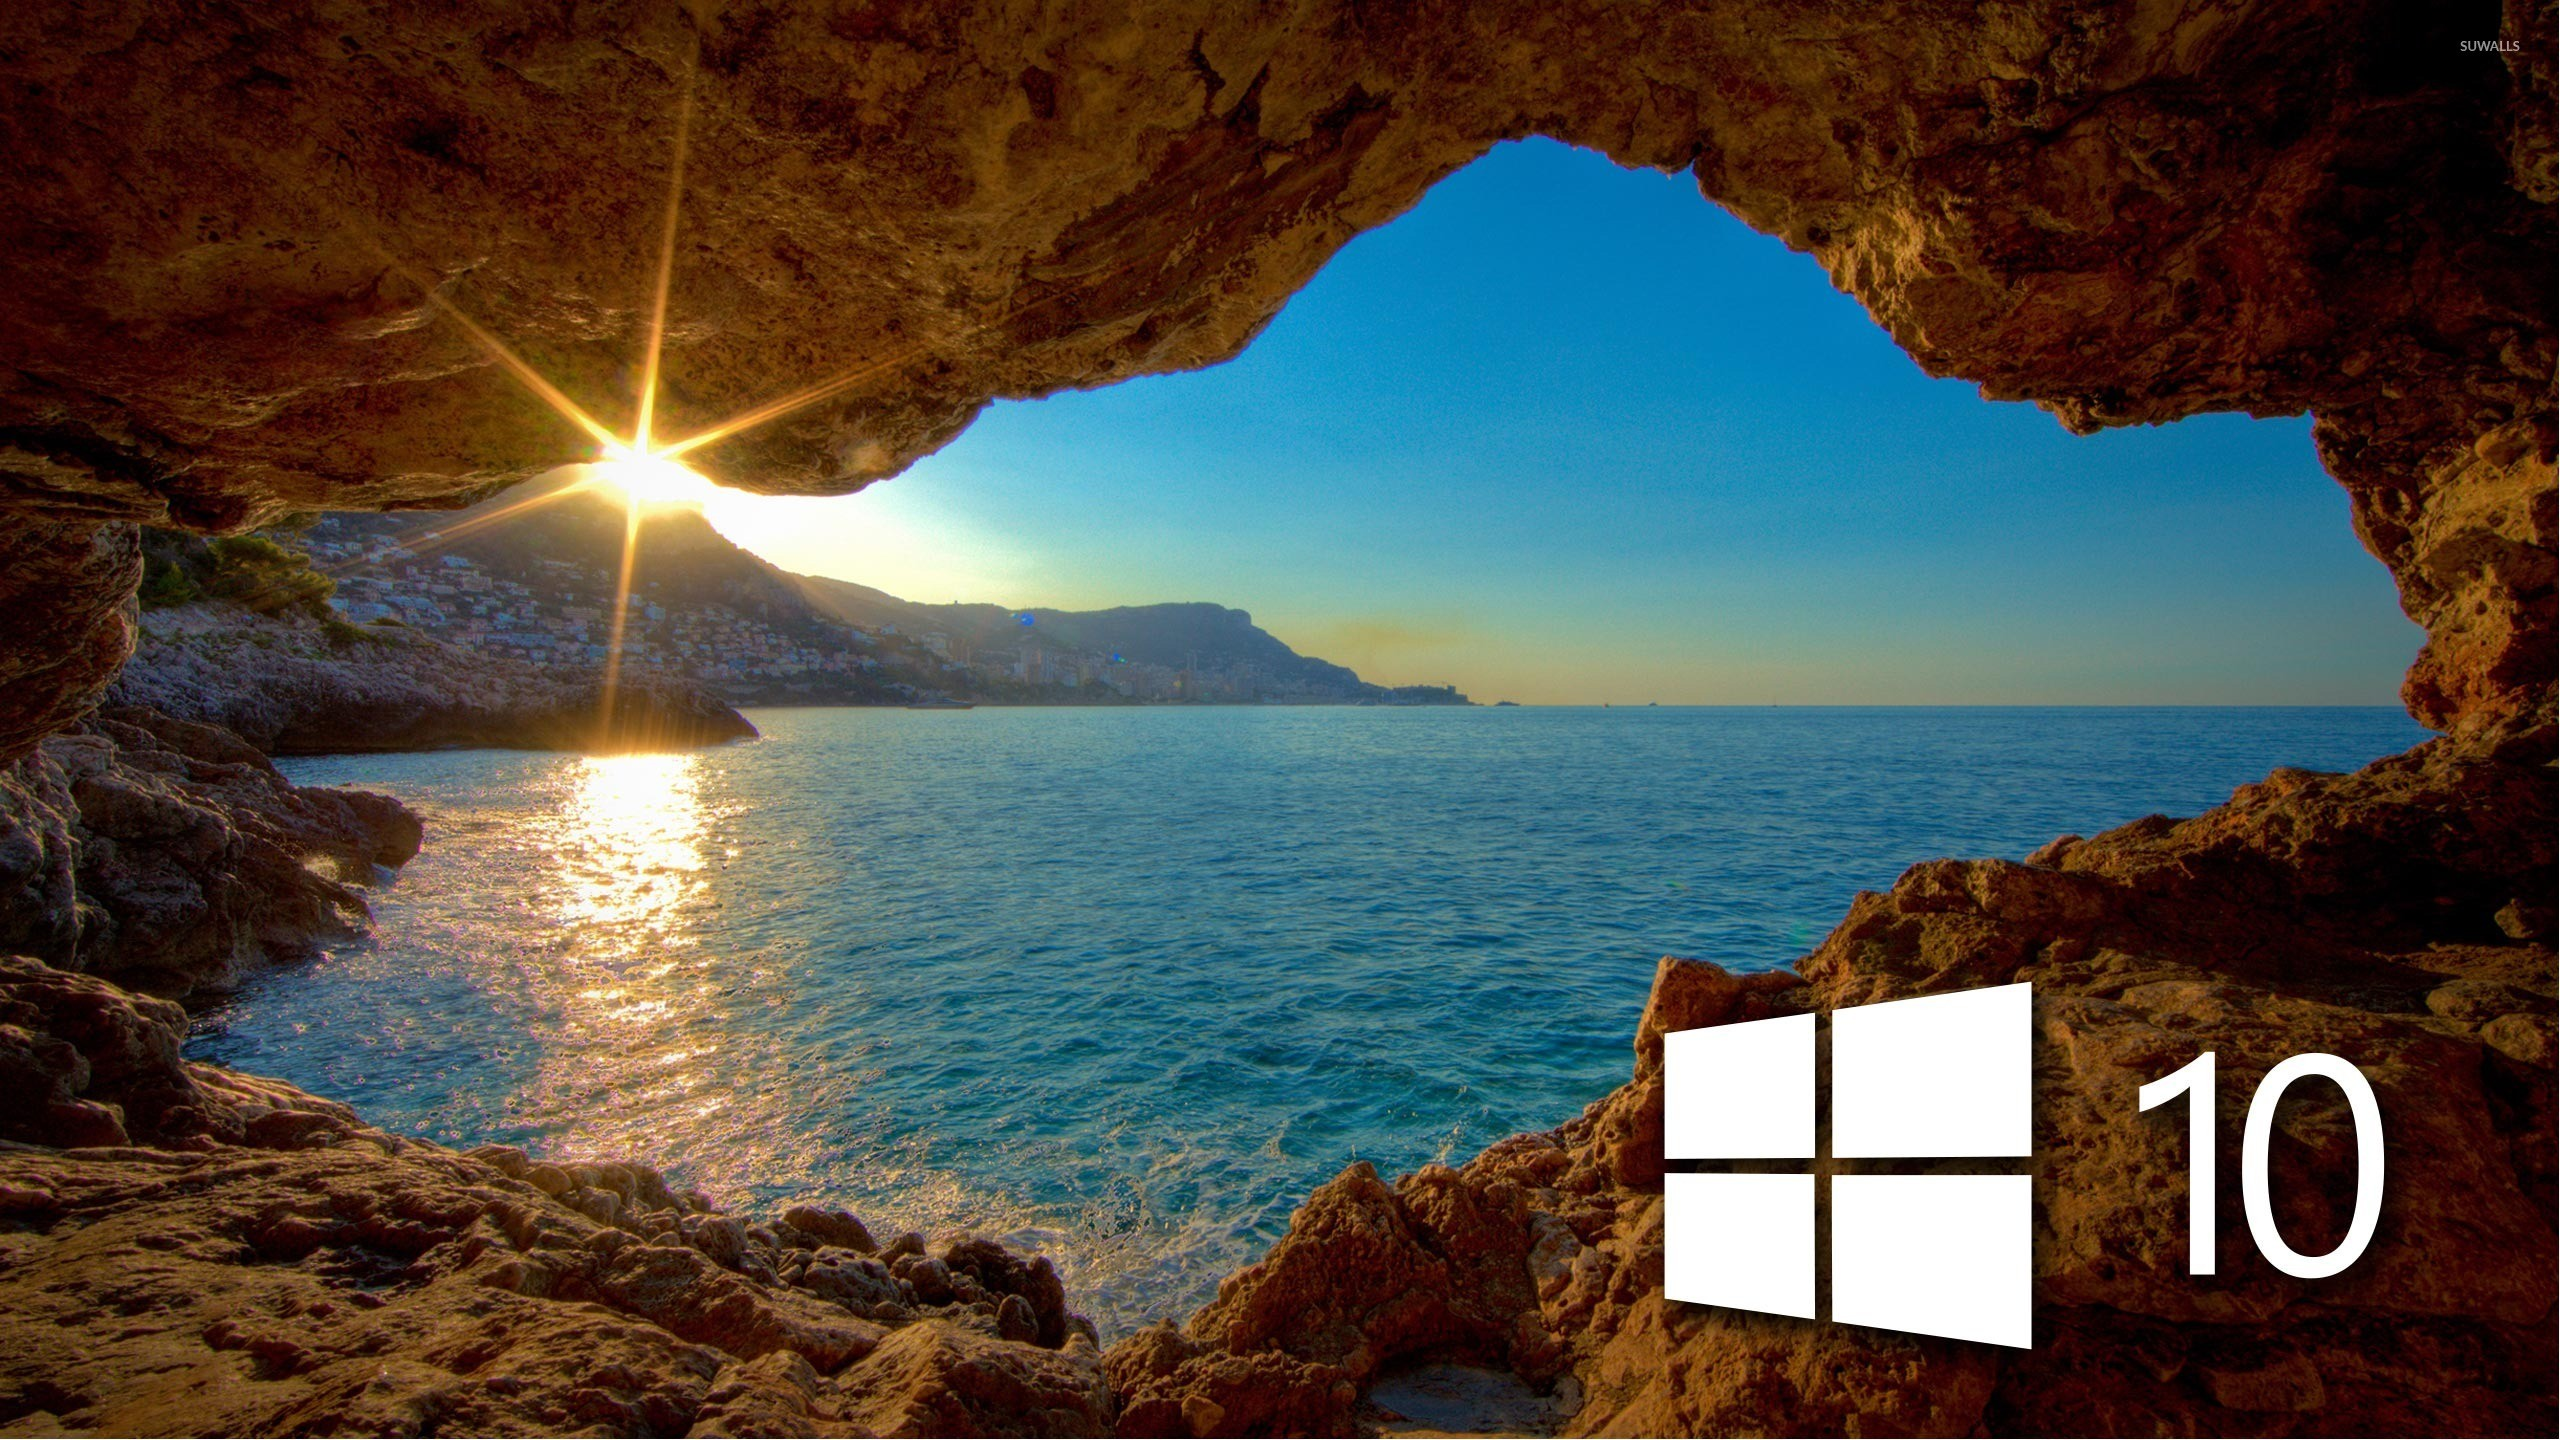 Windows 10 Original Wallpaper: 2560x1440 Wallpaper Windows 10 (73+ Images